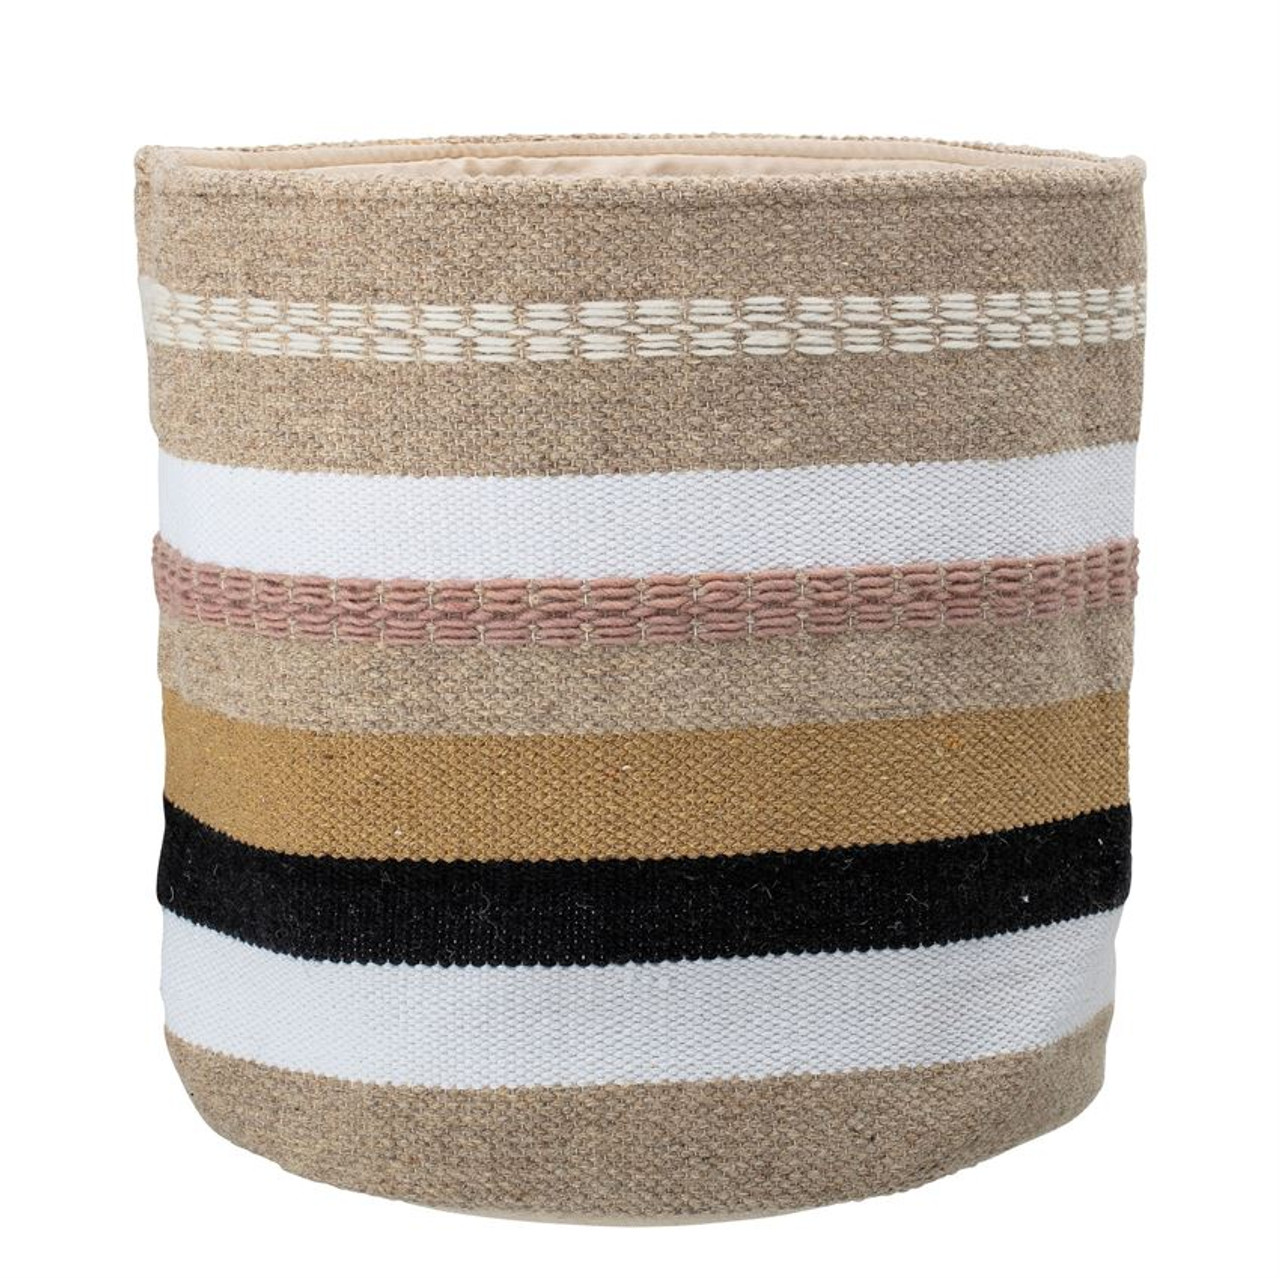 WOVEN WOOL & COTTON BASKET - MULTICOLOUR STRIPES